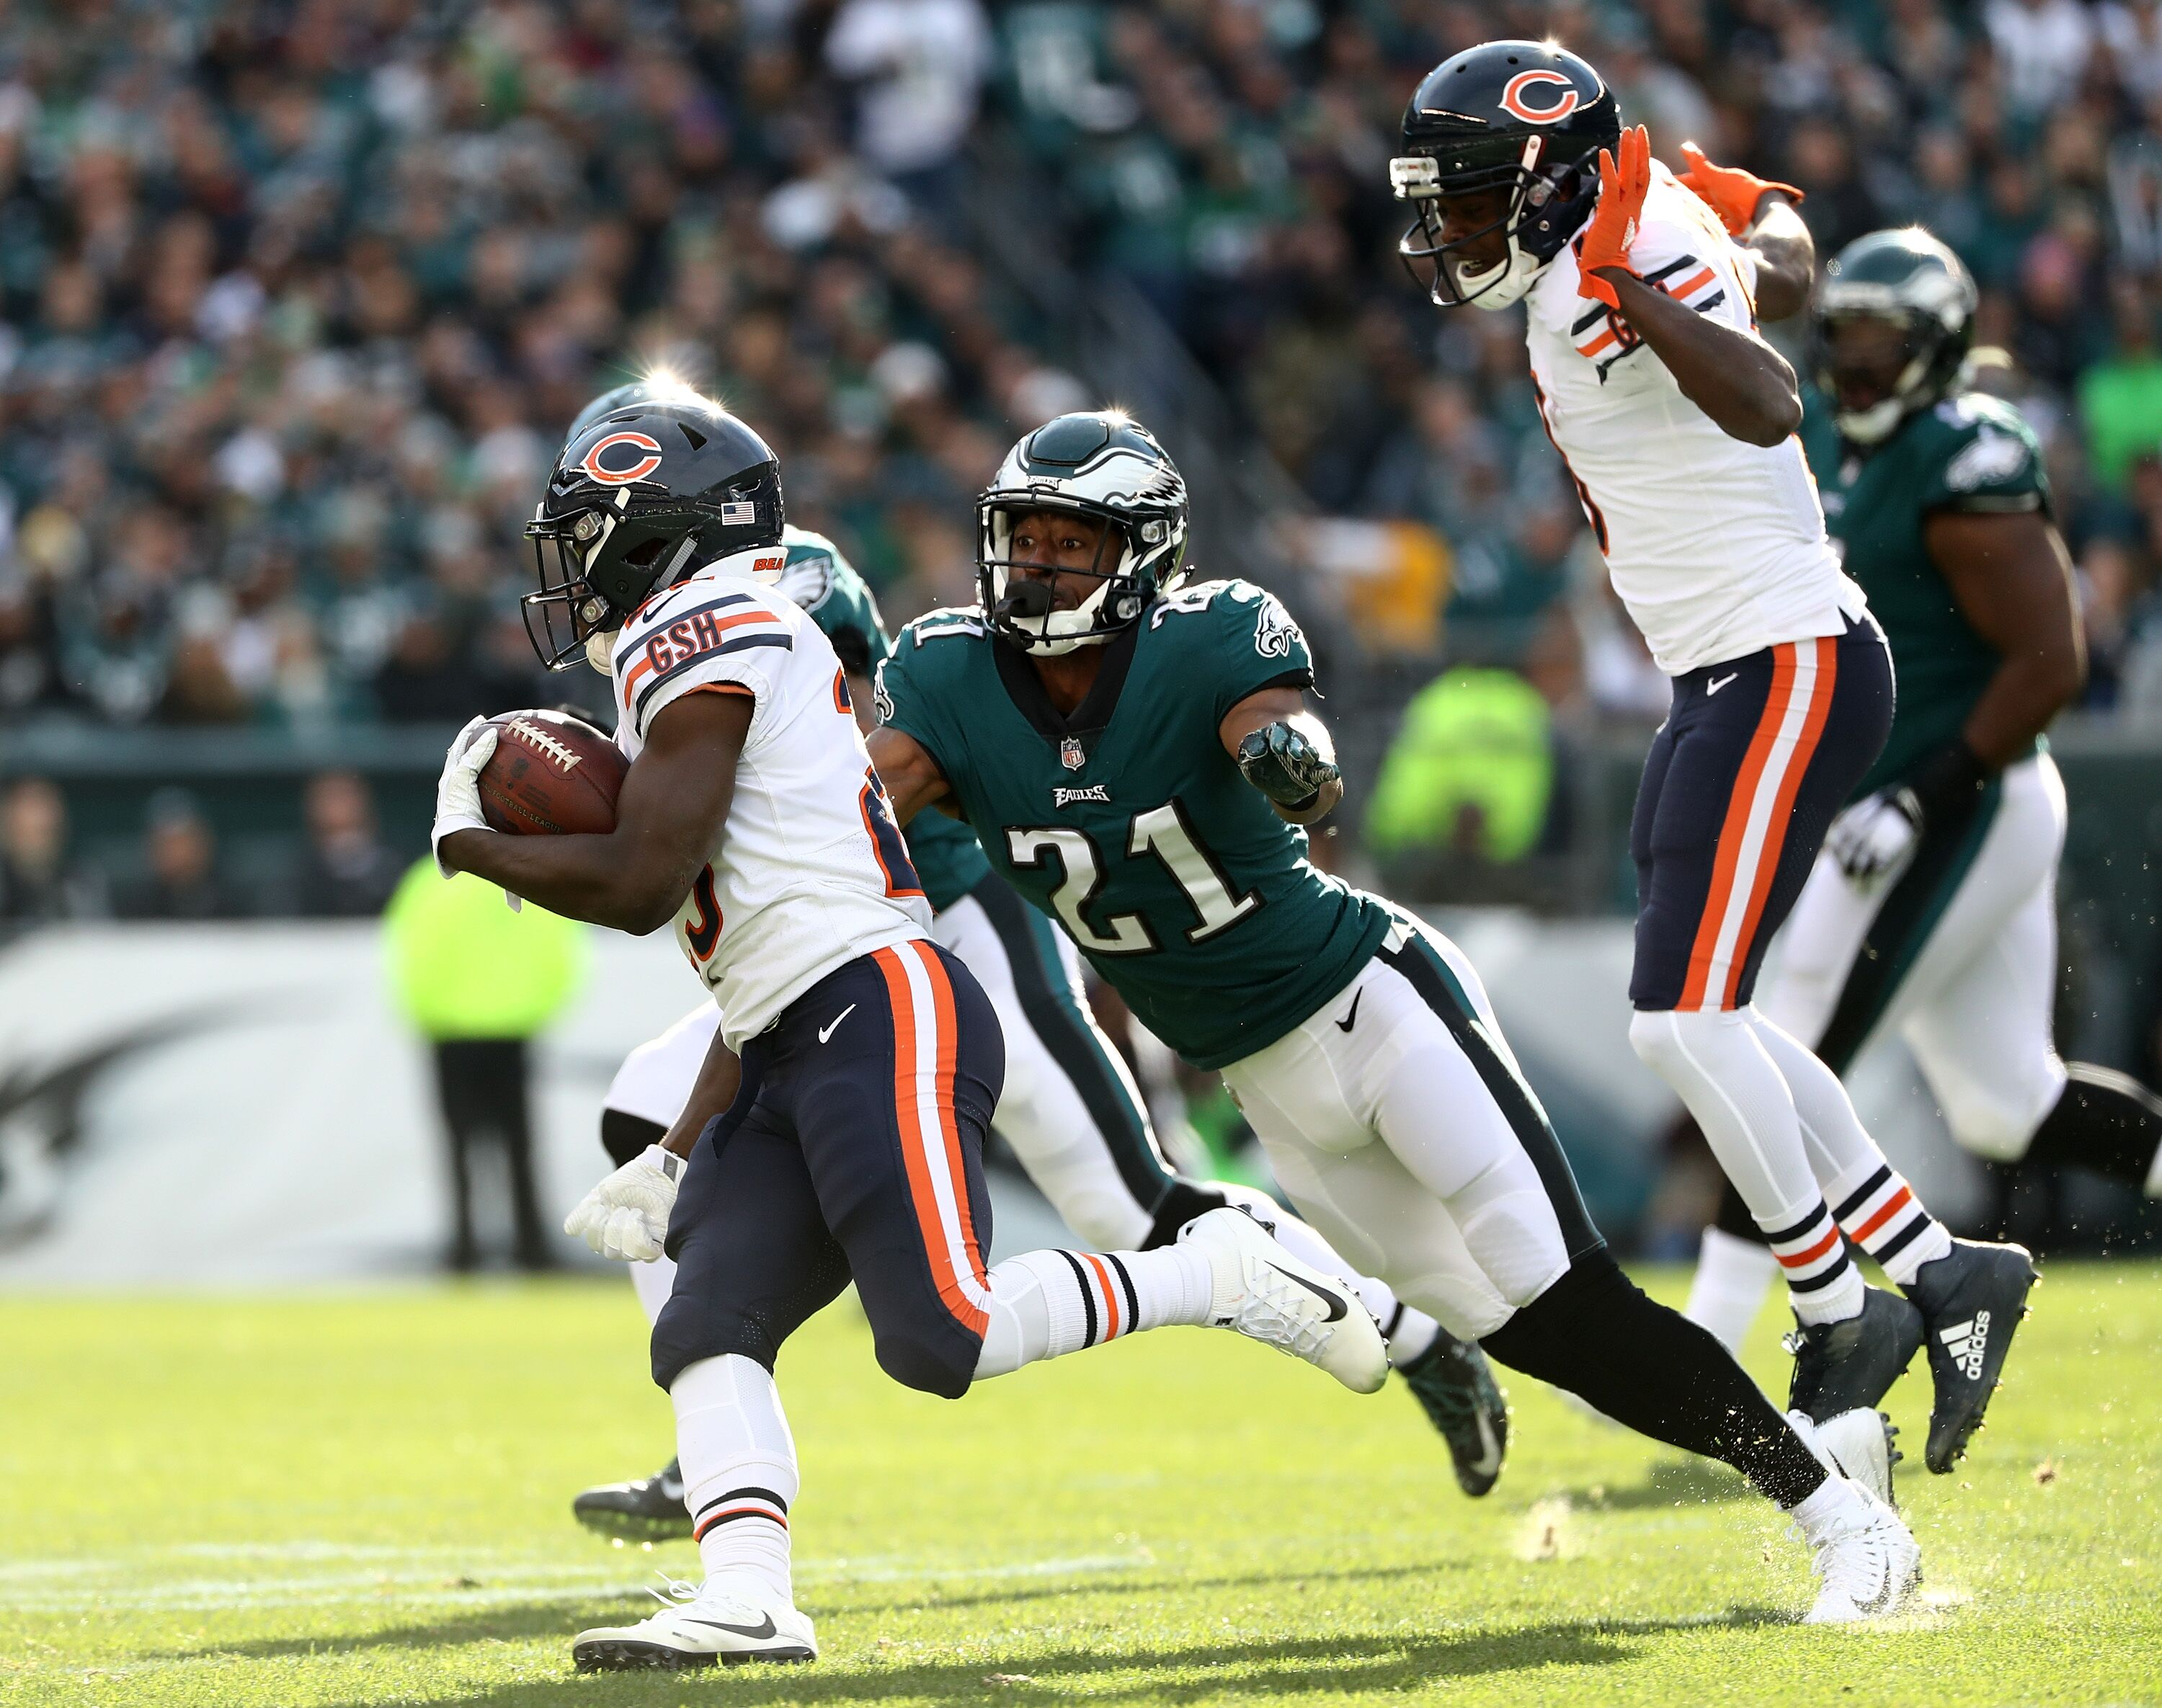 879633280-chicago-bears-v-philadelphia-eagles.jpg